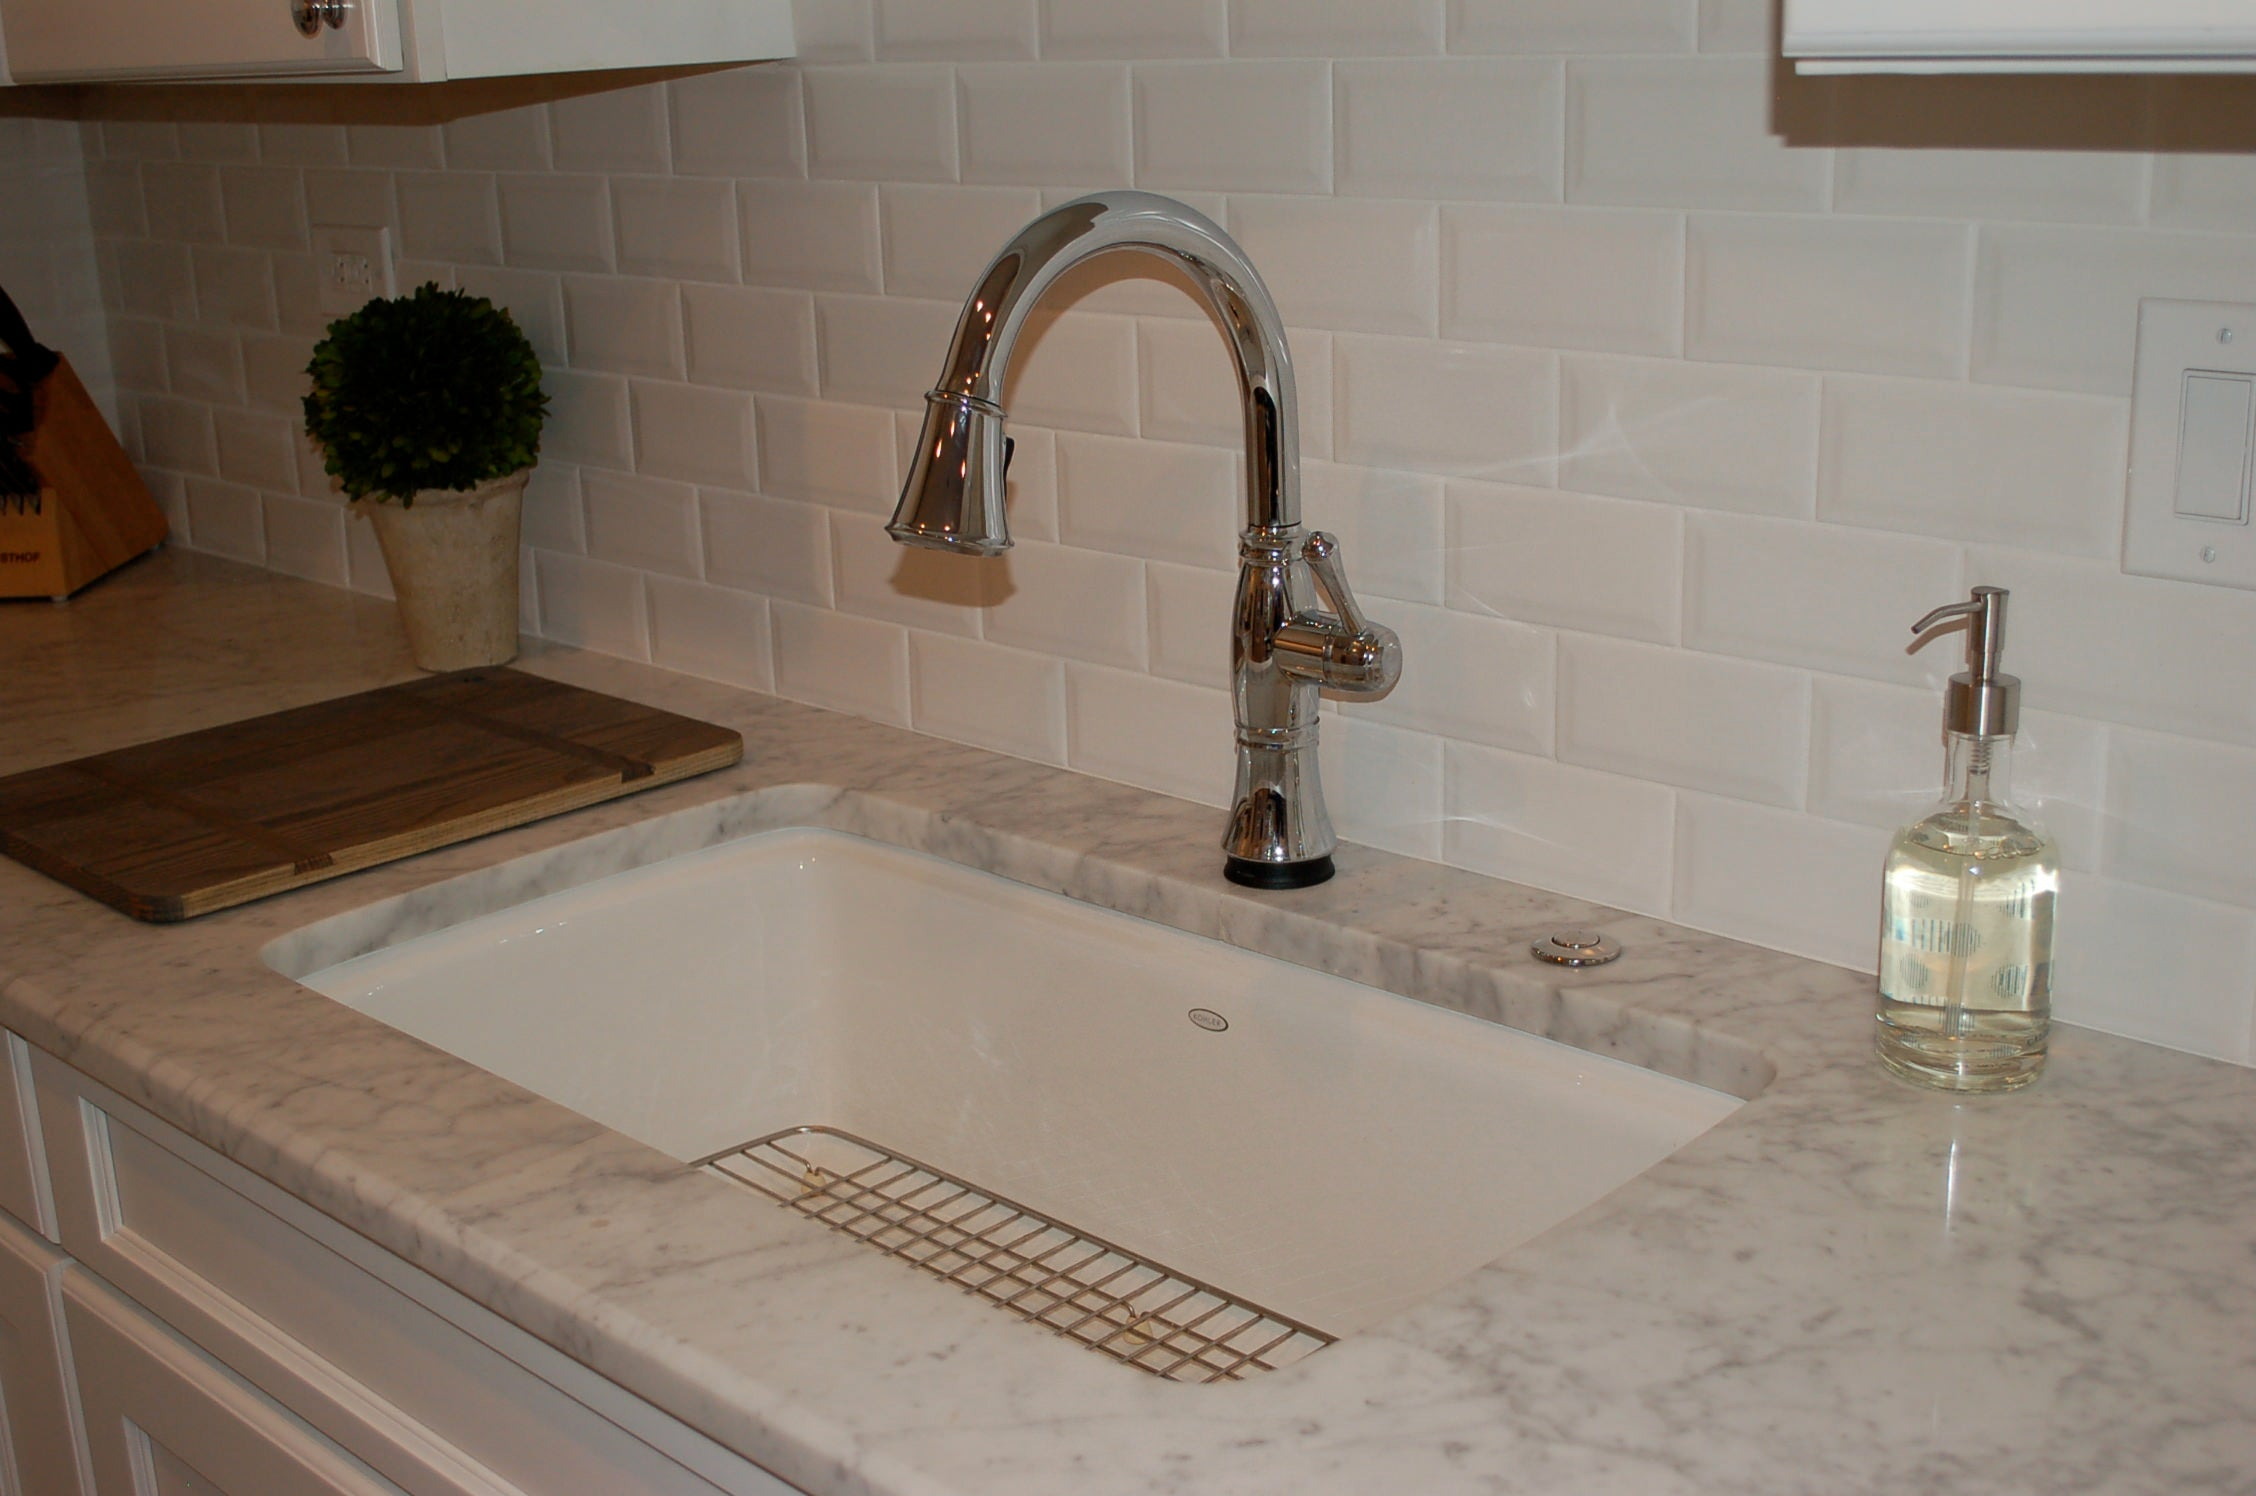 farm sinks, white sinks, chrome faucets, white kitchen, modern sink, modern faucets